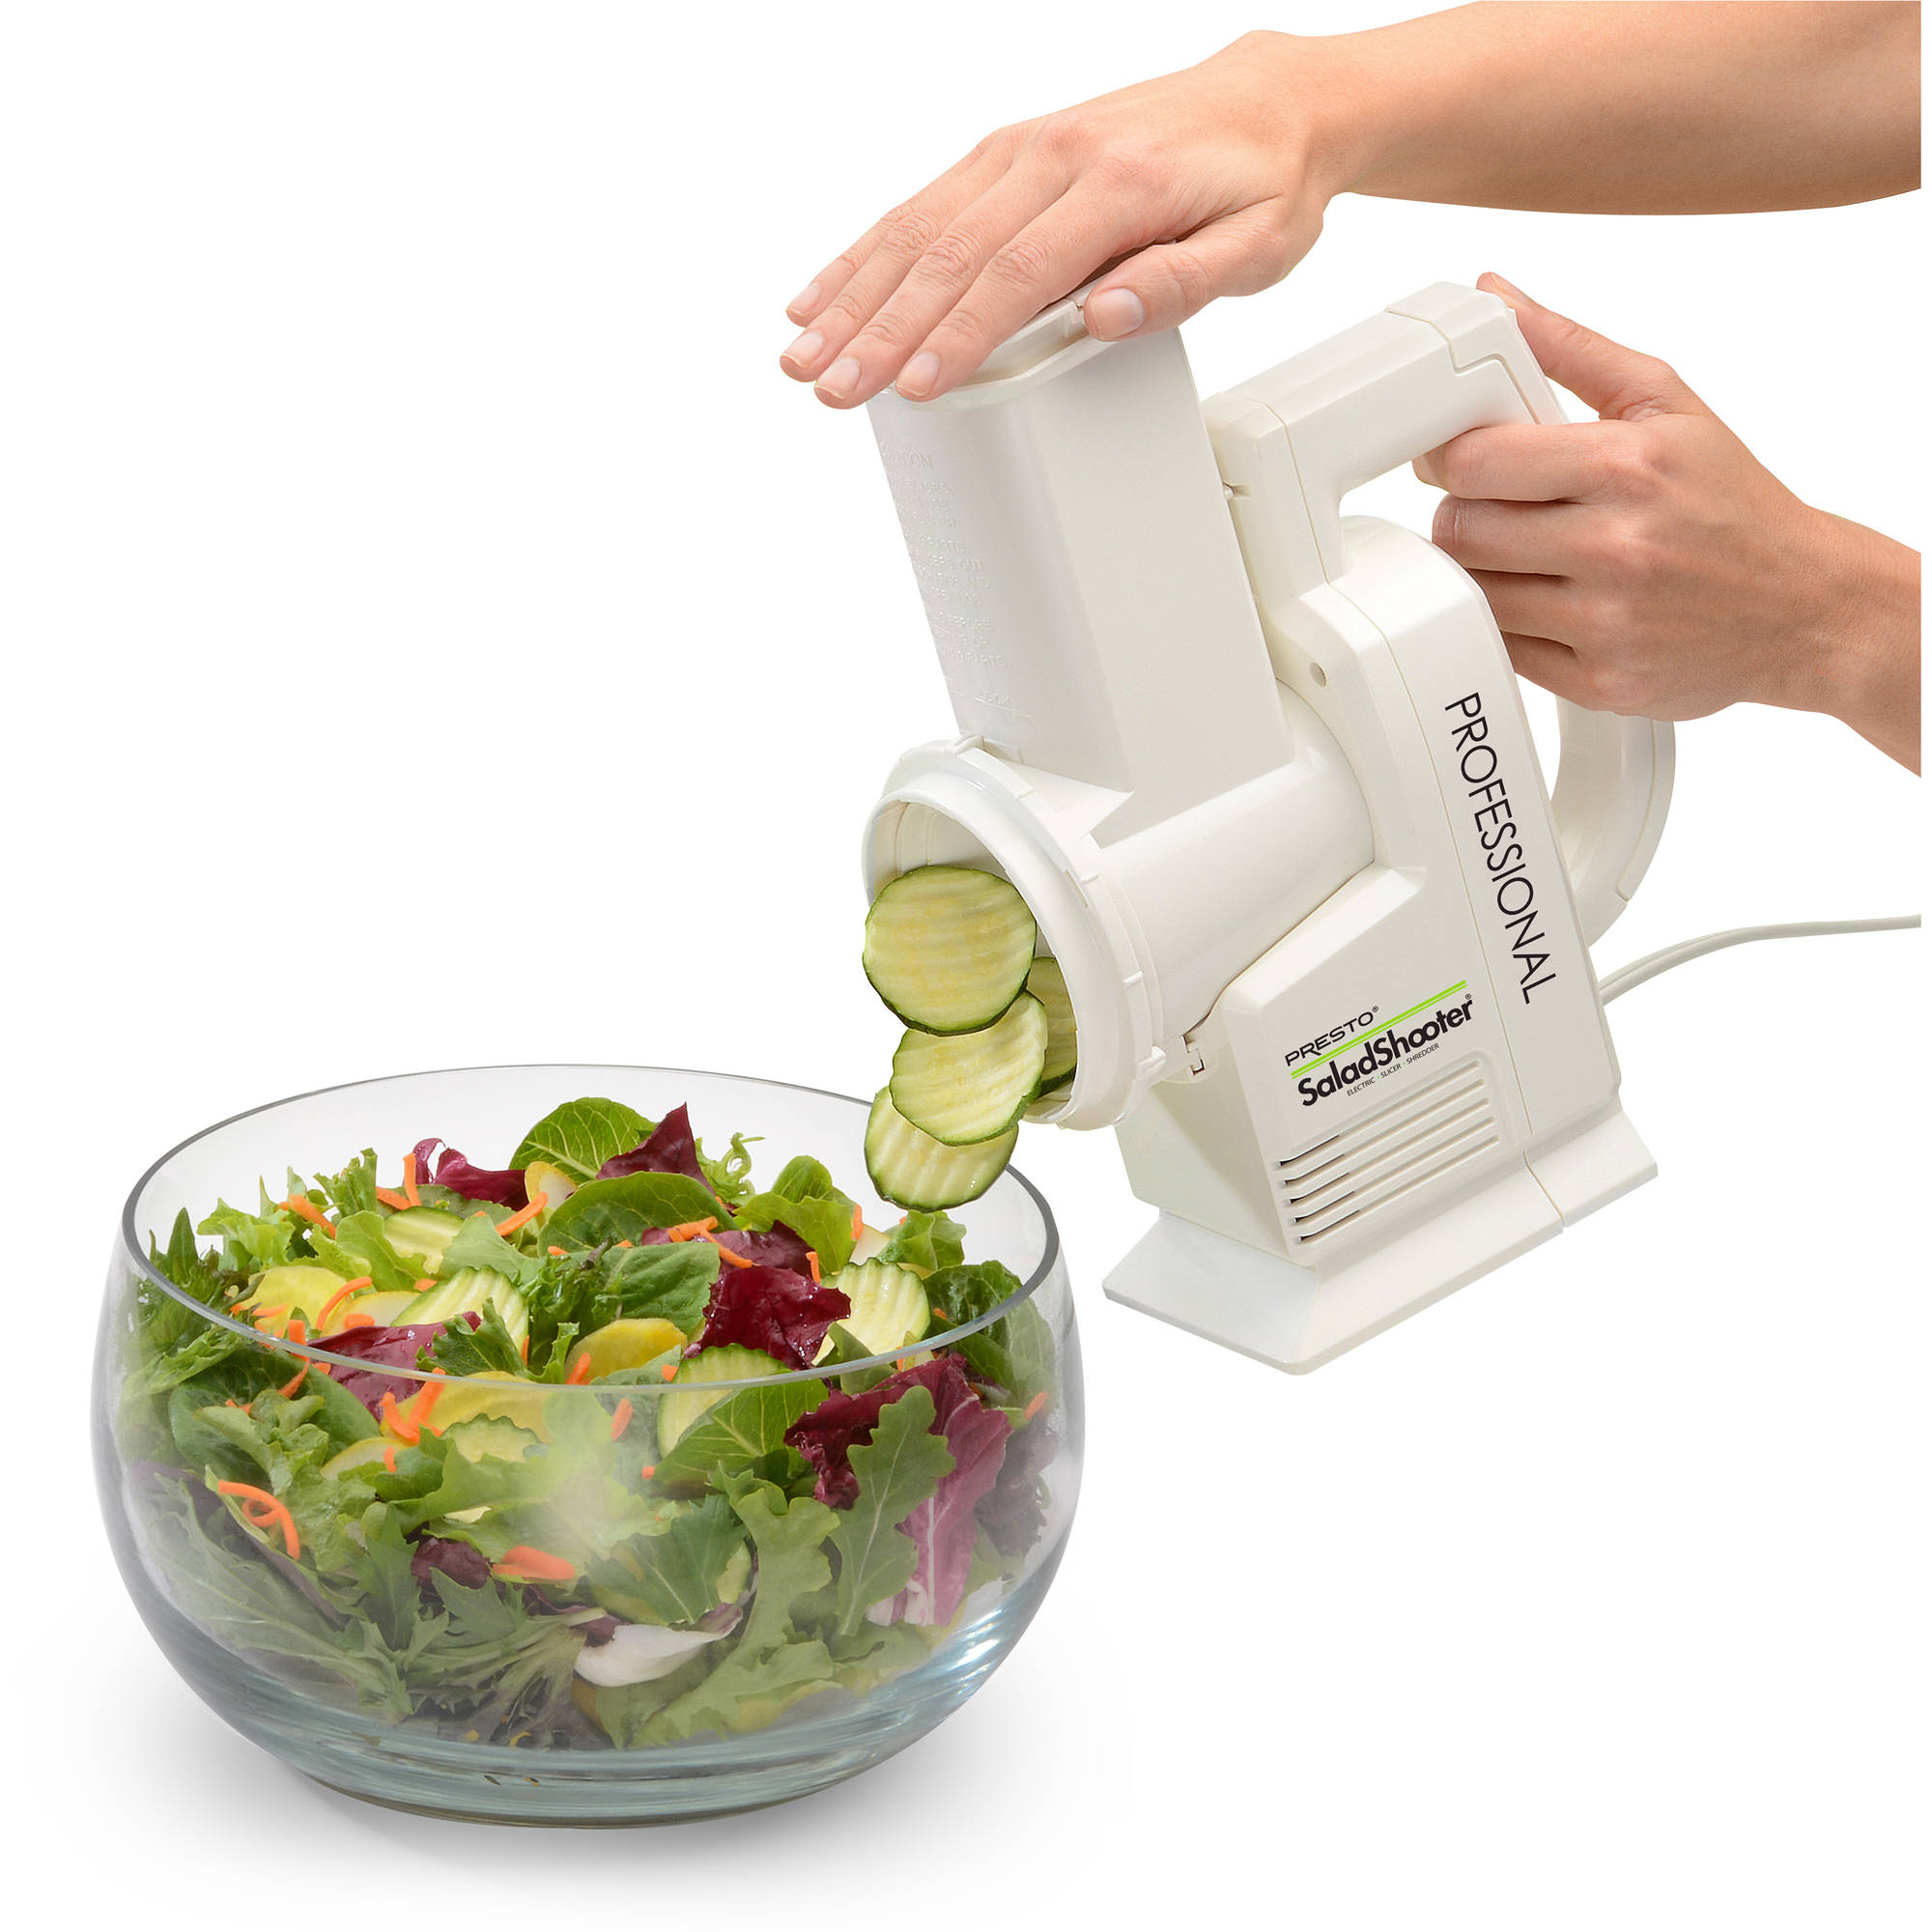 Presto Professional SaladShooter Electric Slicer/Shredder